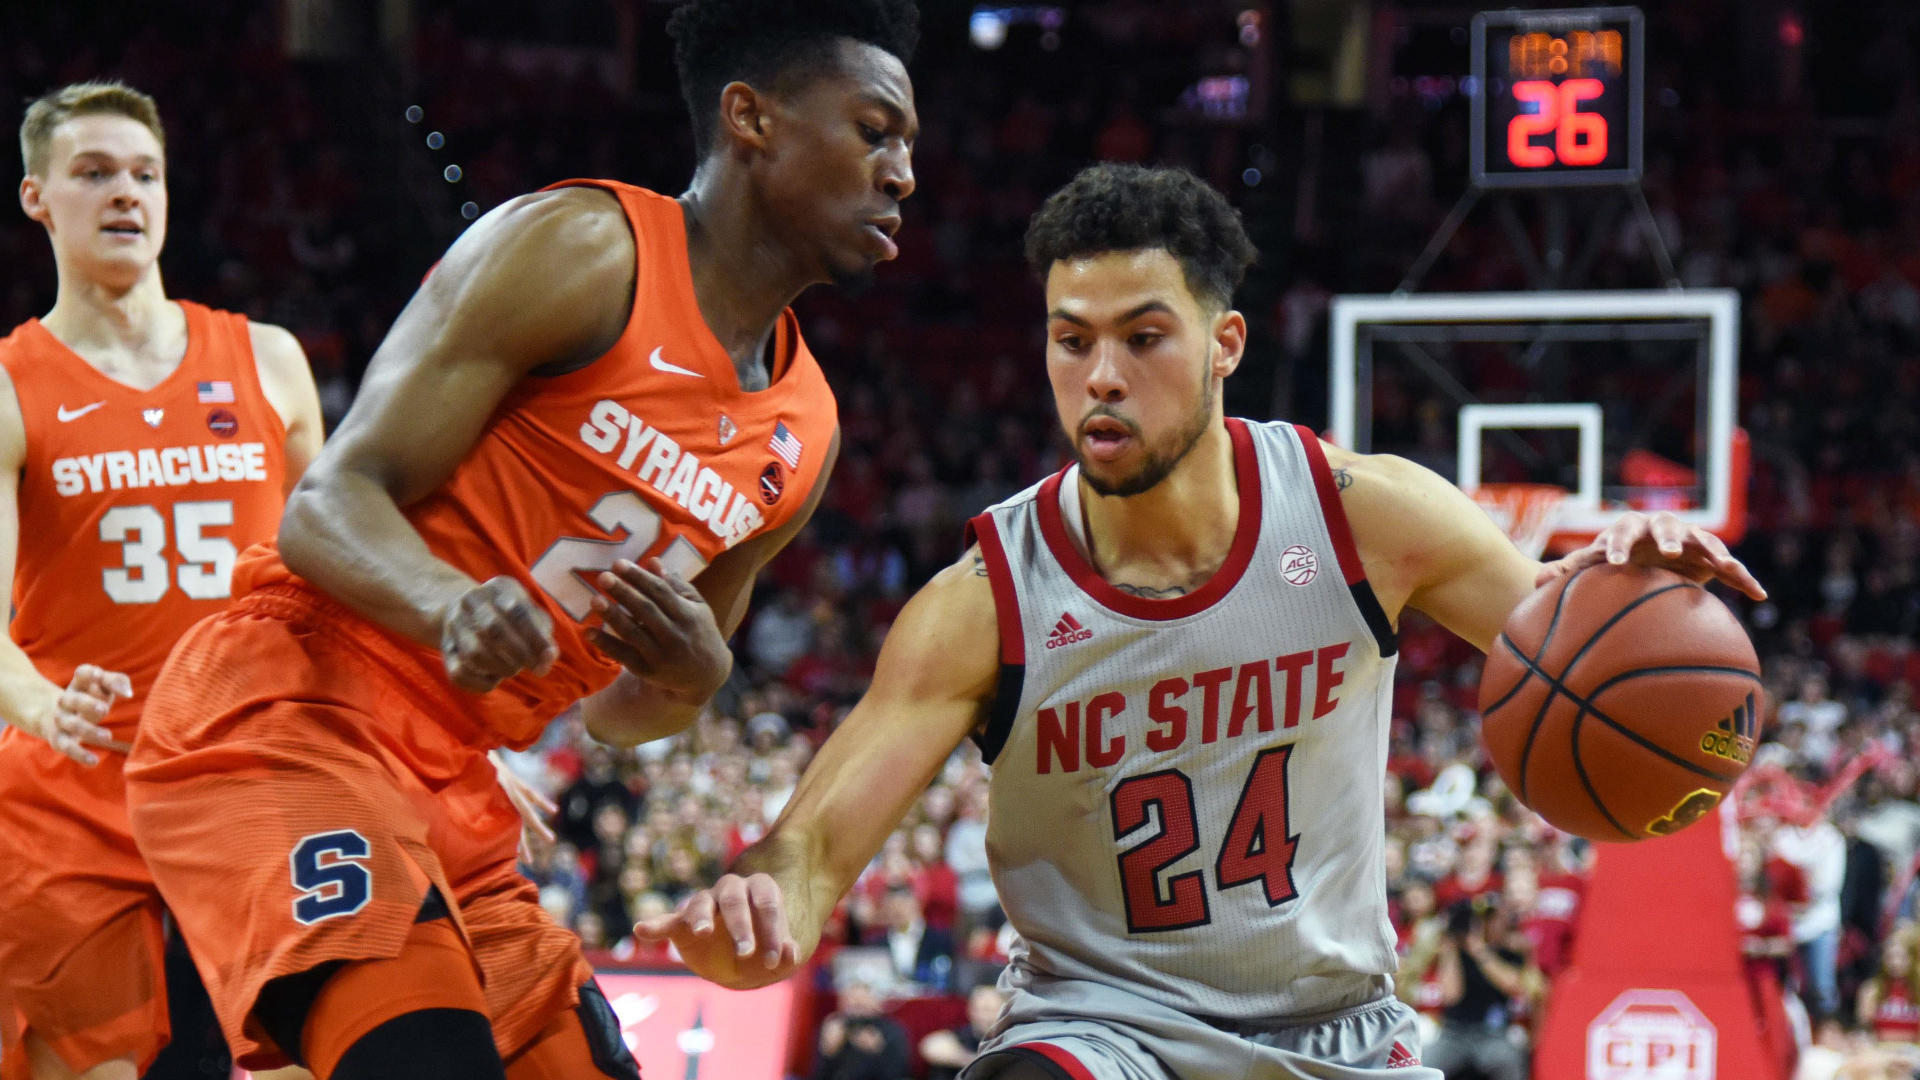 Bracketology Bubble Watch: NC State has huge opportunity to pick up a quality win vs. Duke